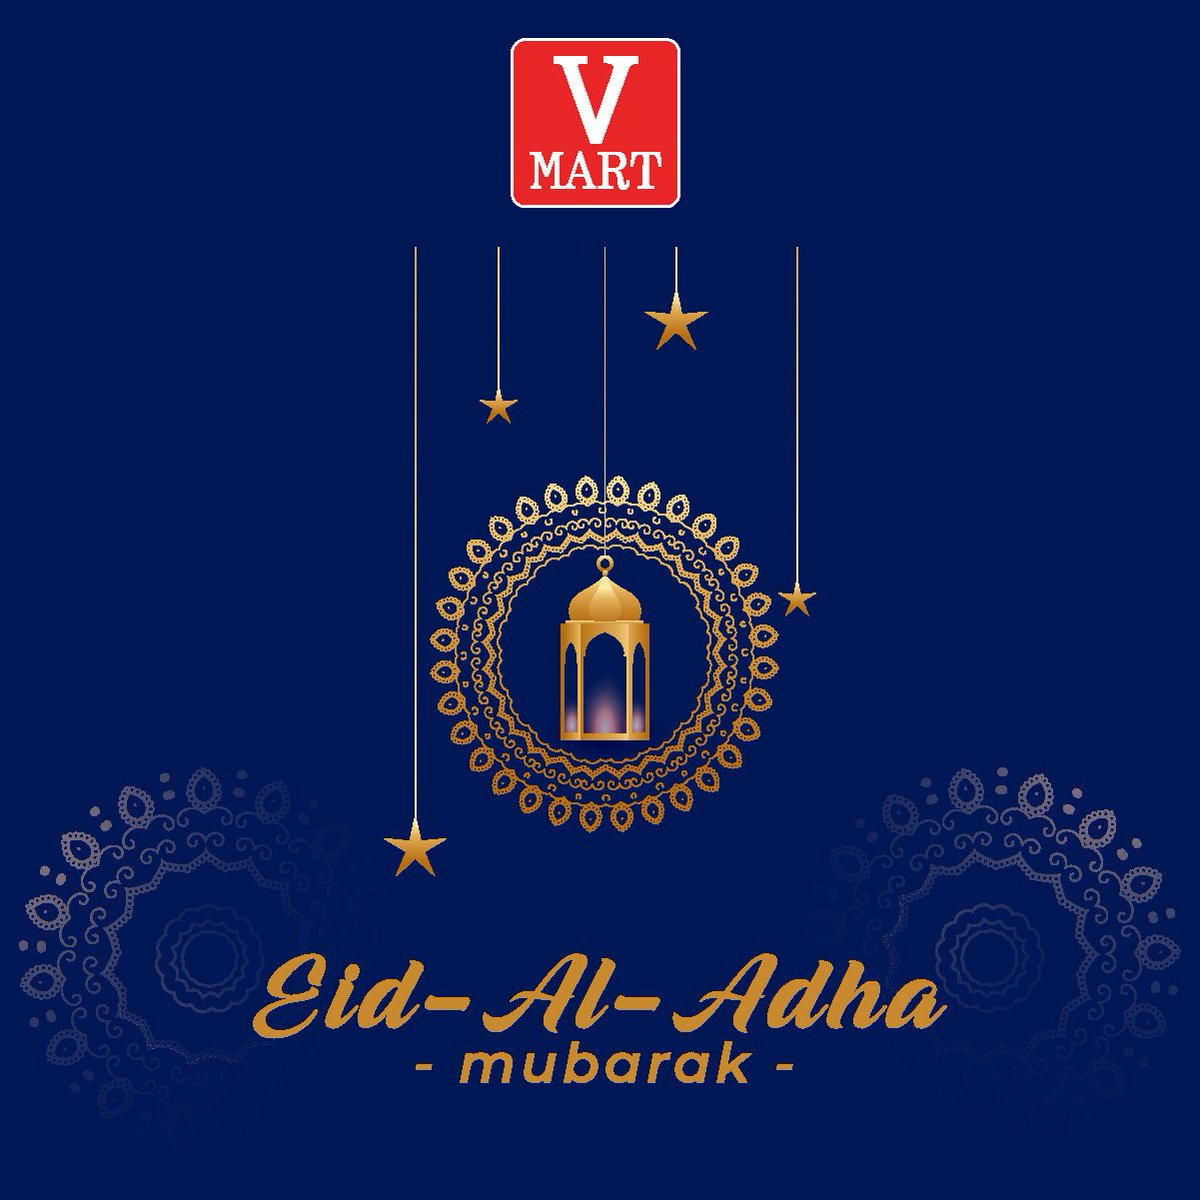 V Mart wishes you and your loved ones a blessed Eid Al Adha EidAlAdhaMubarak EidAlAdha https t.co M3JZqLKwqH